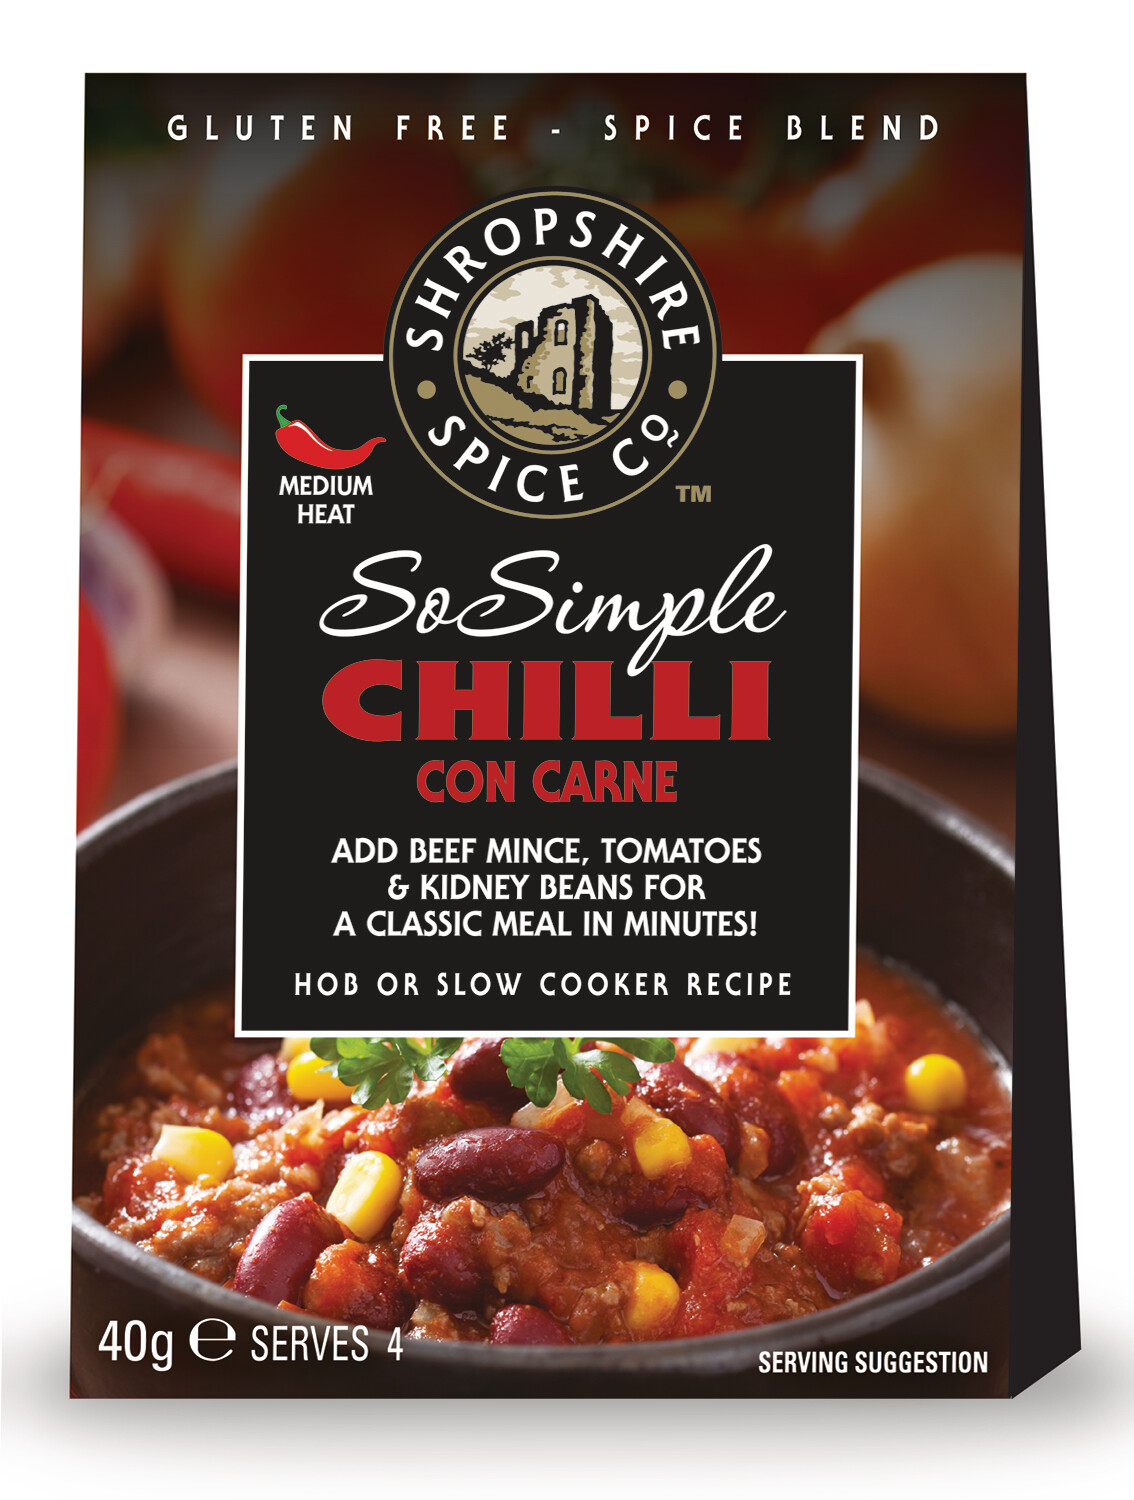 Gluten Free So Simple Range Chilli Con Carne